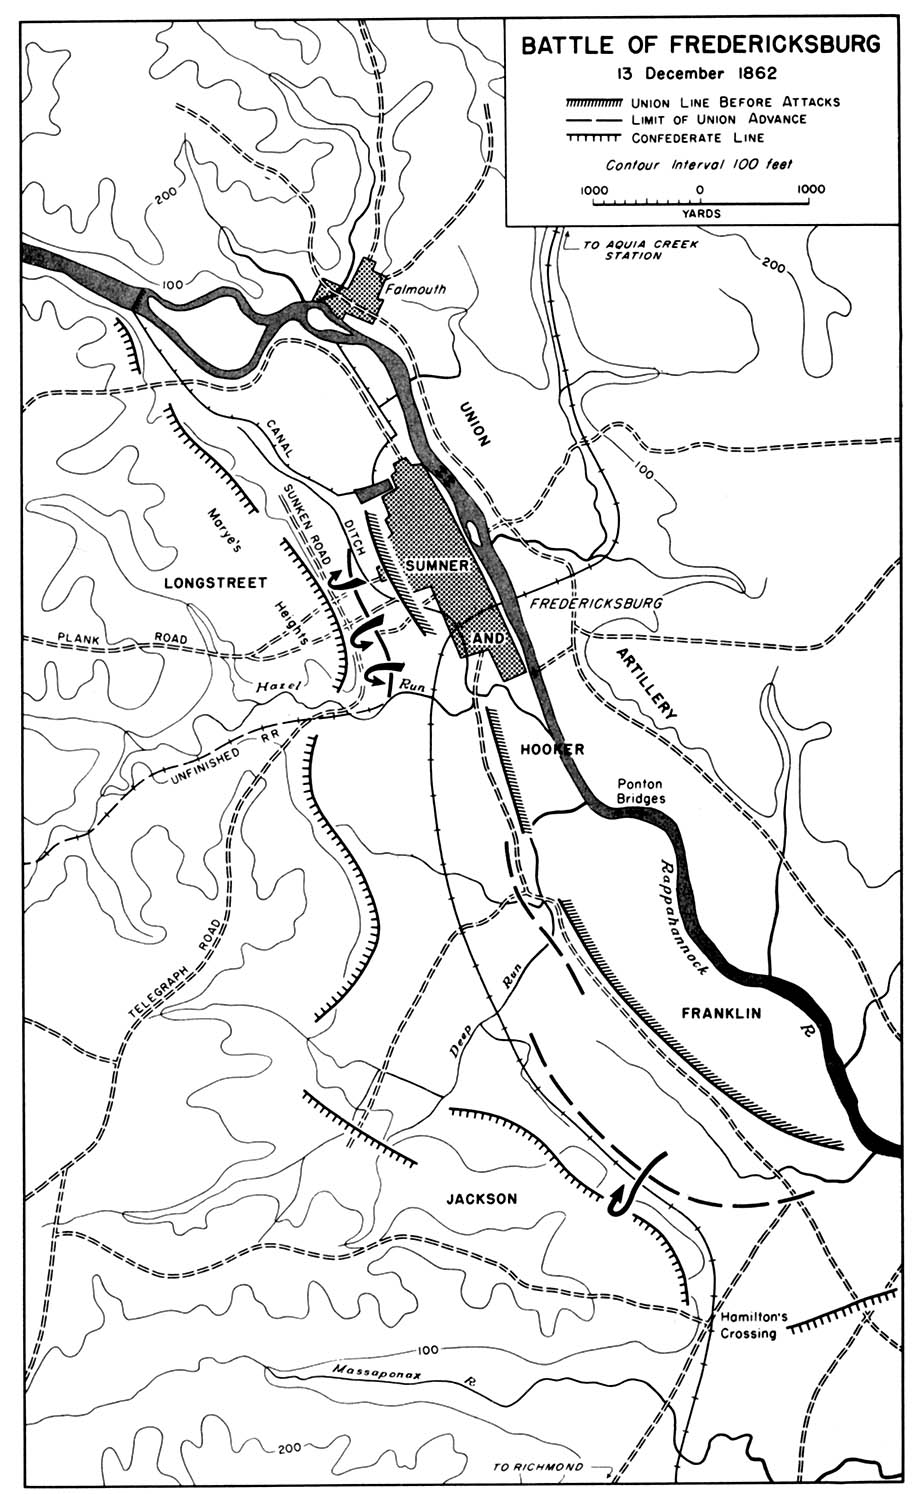 chapter 10 the civil war 1862 One Page Review map 27 battle of fredericksburg 13 december 1862